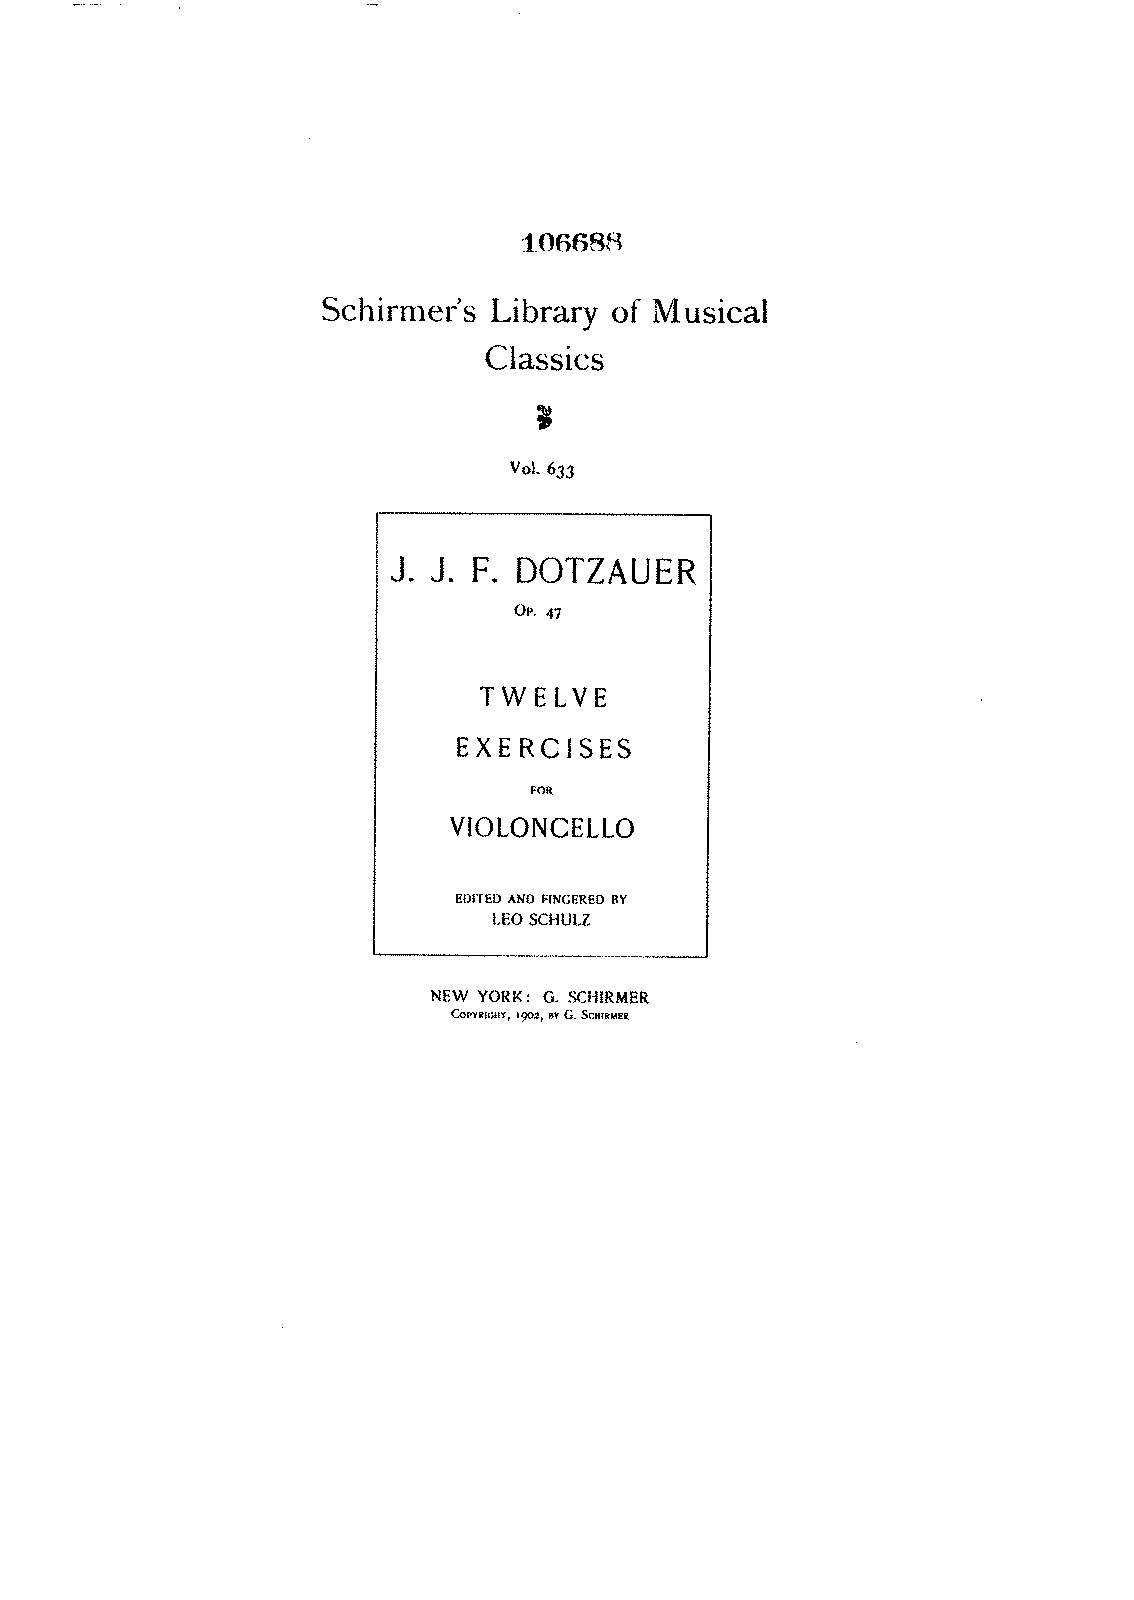 PMLP384175-Dotzauer - 12 Exercises for Cello Op47 (schulz).pdf